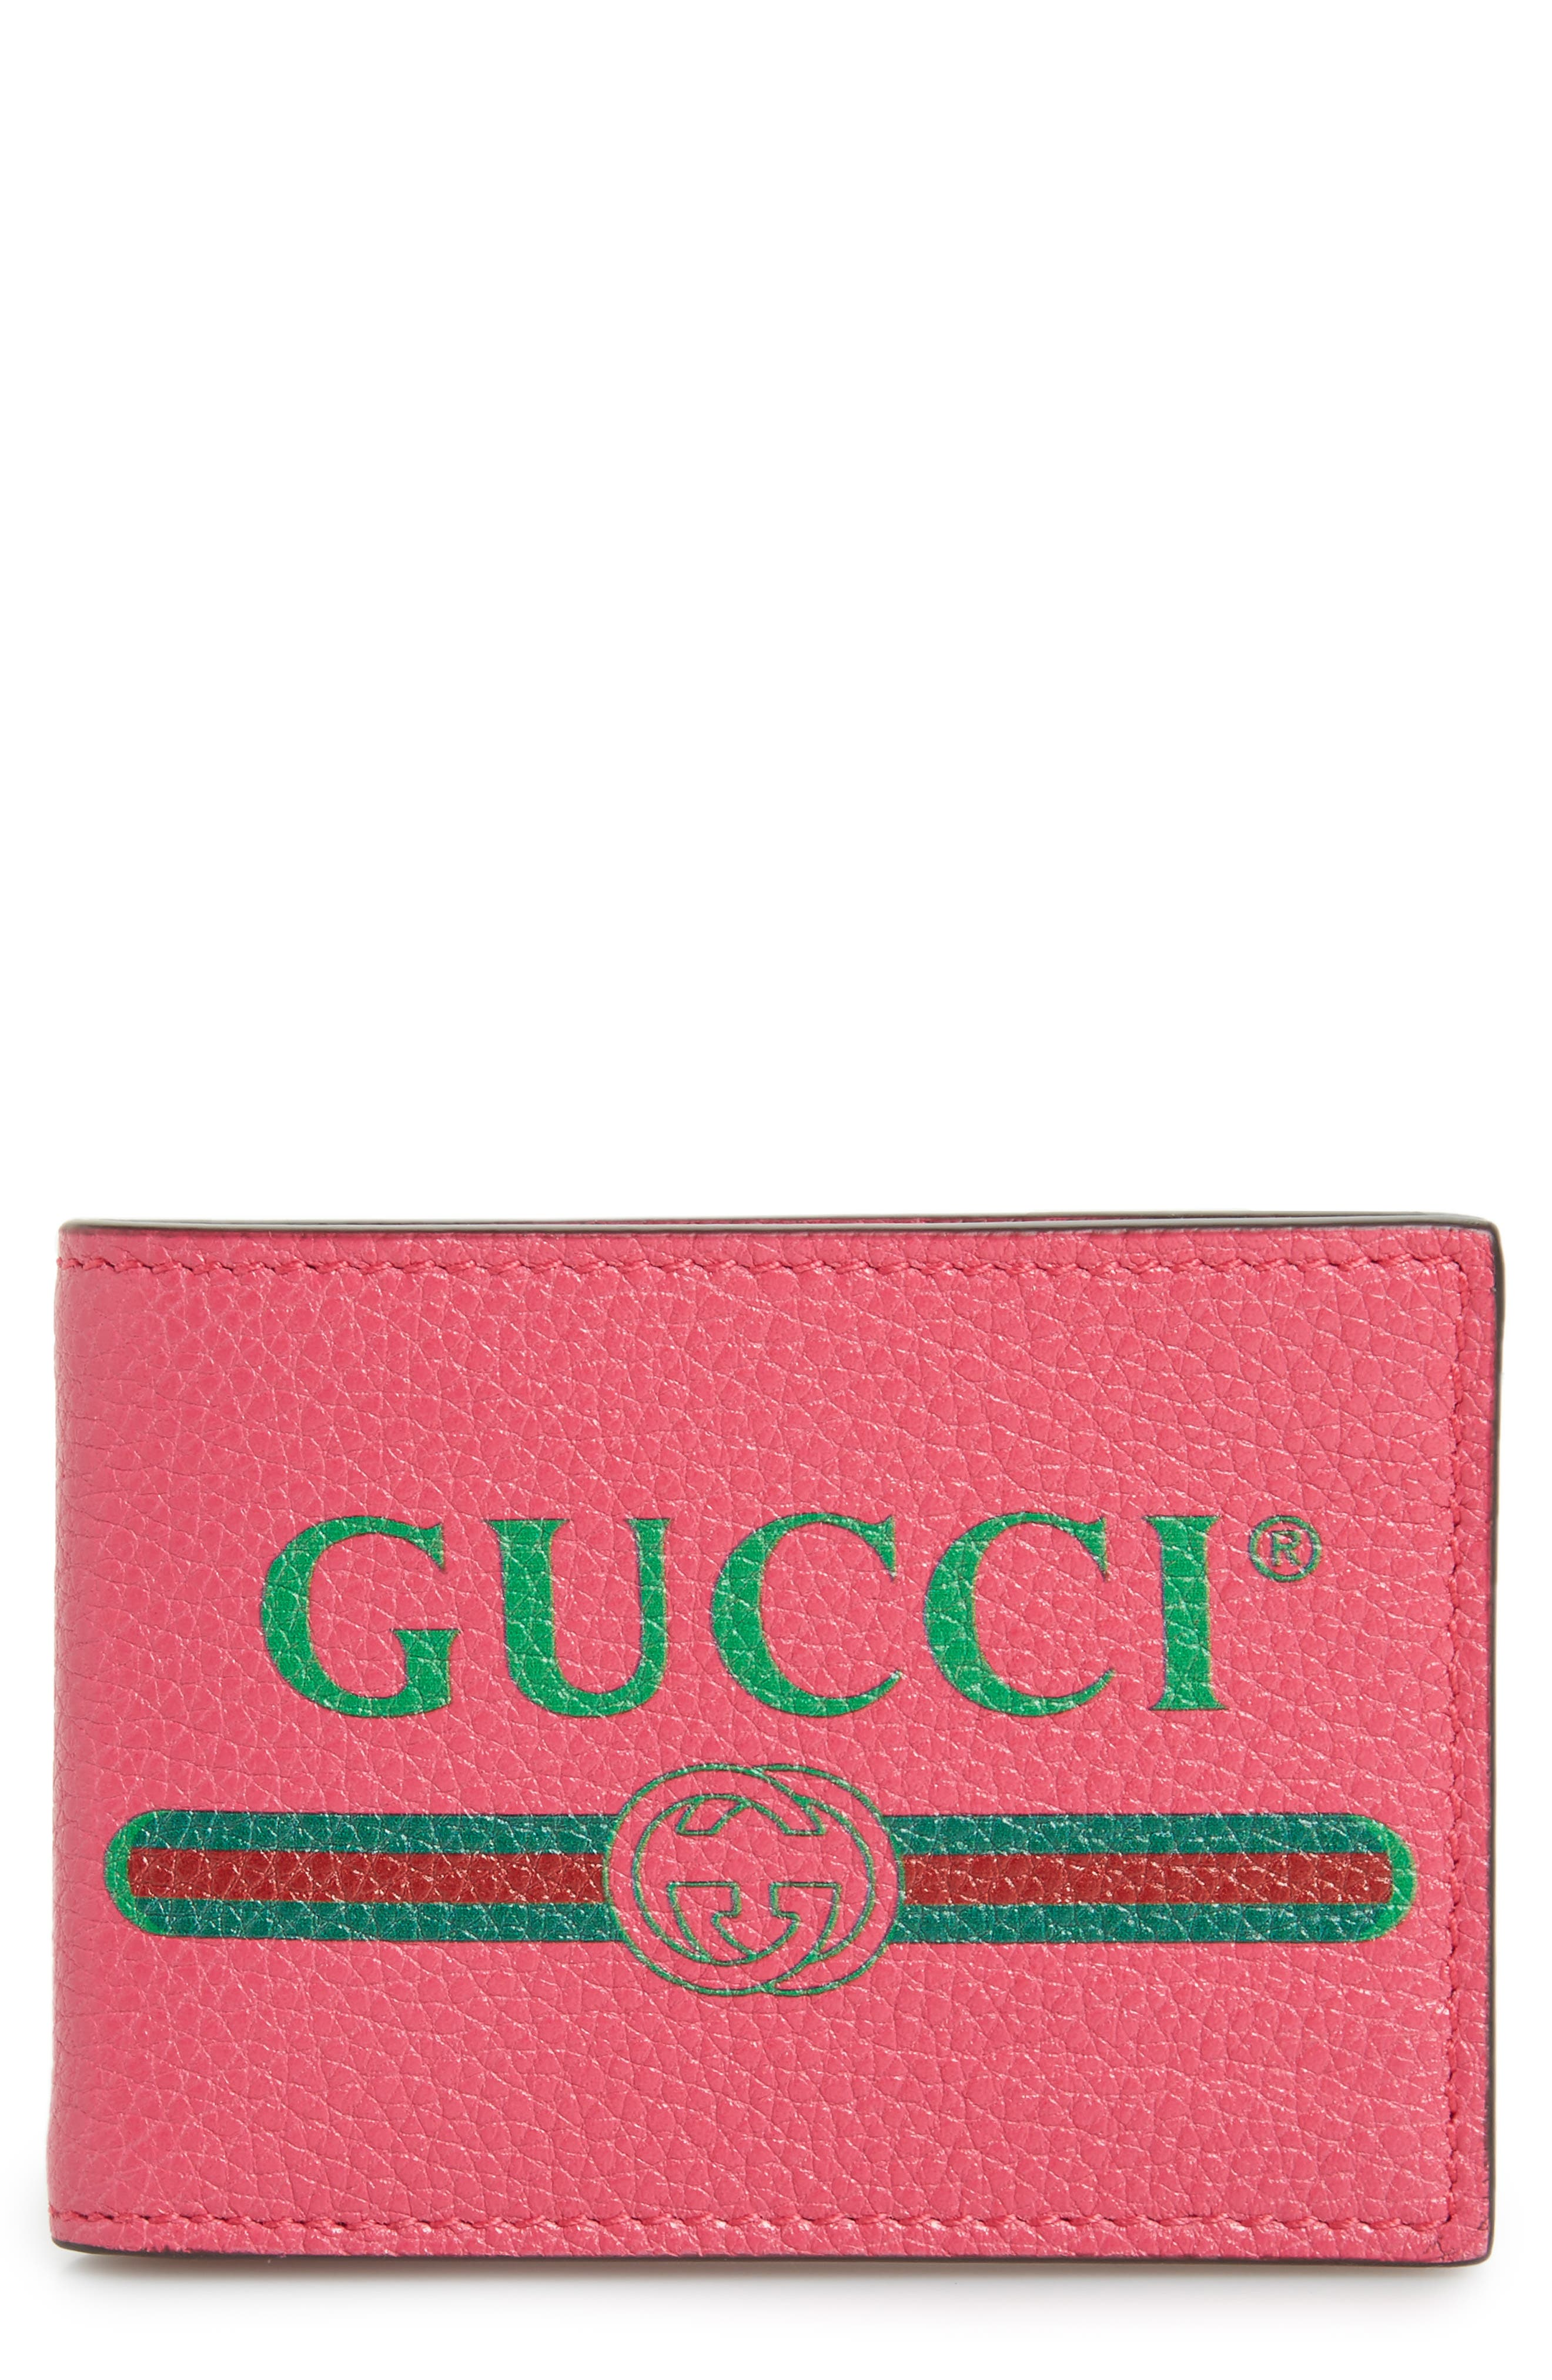 Main Image - Gucci Bifold Leather Wallet